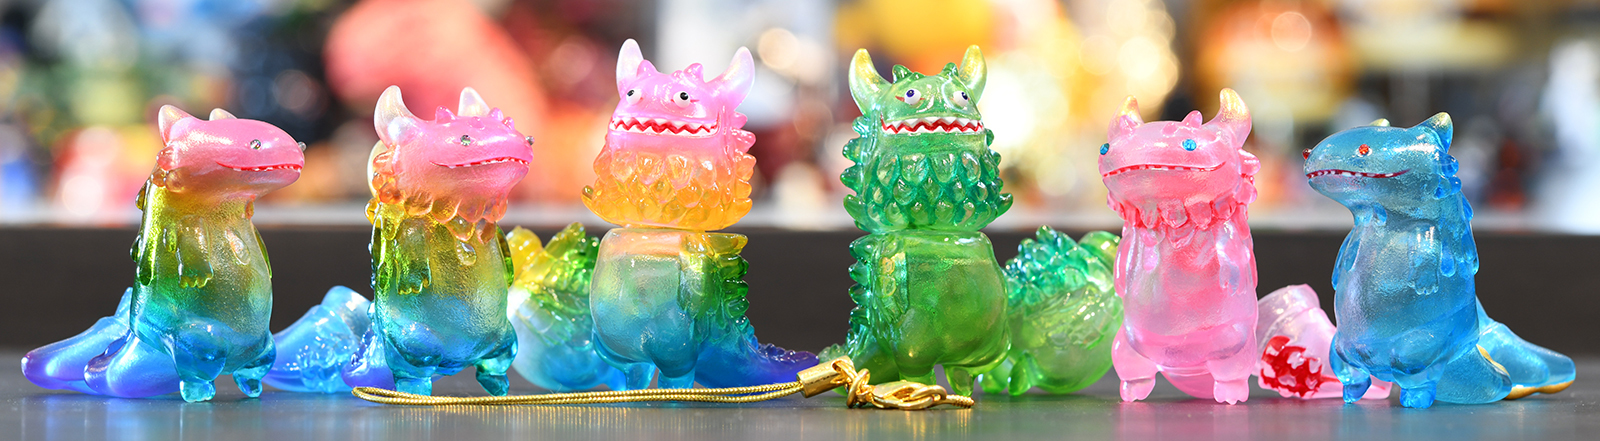 mini-sofubi-series-2018-clear.jpg